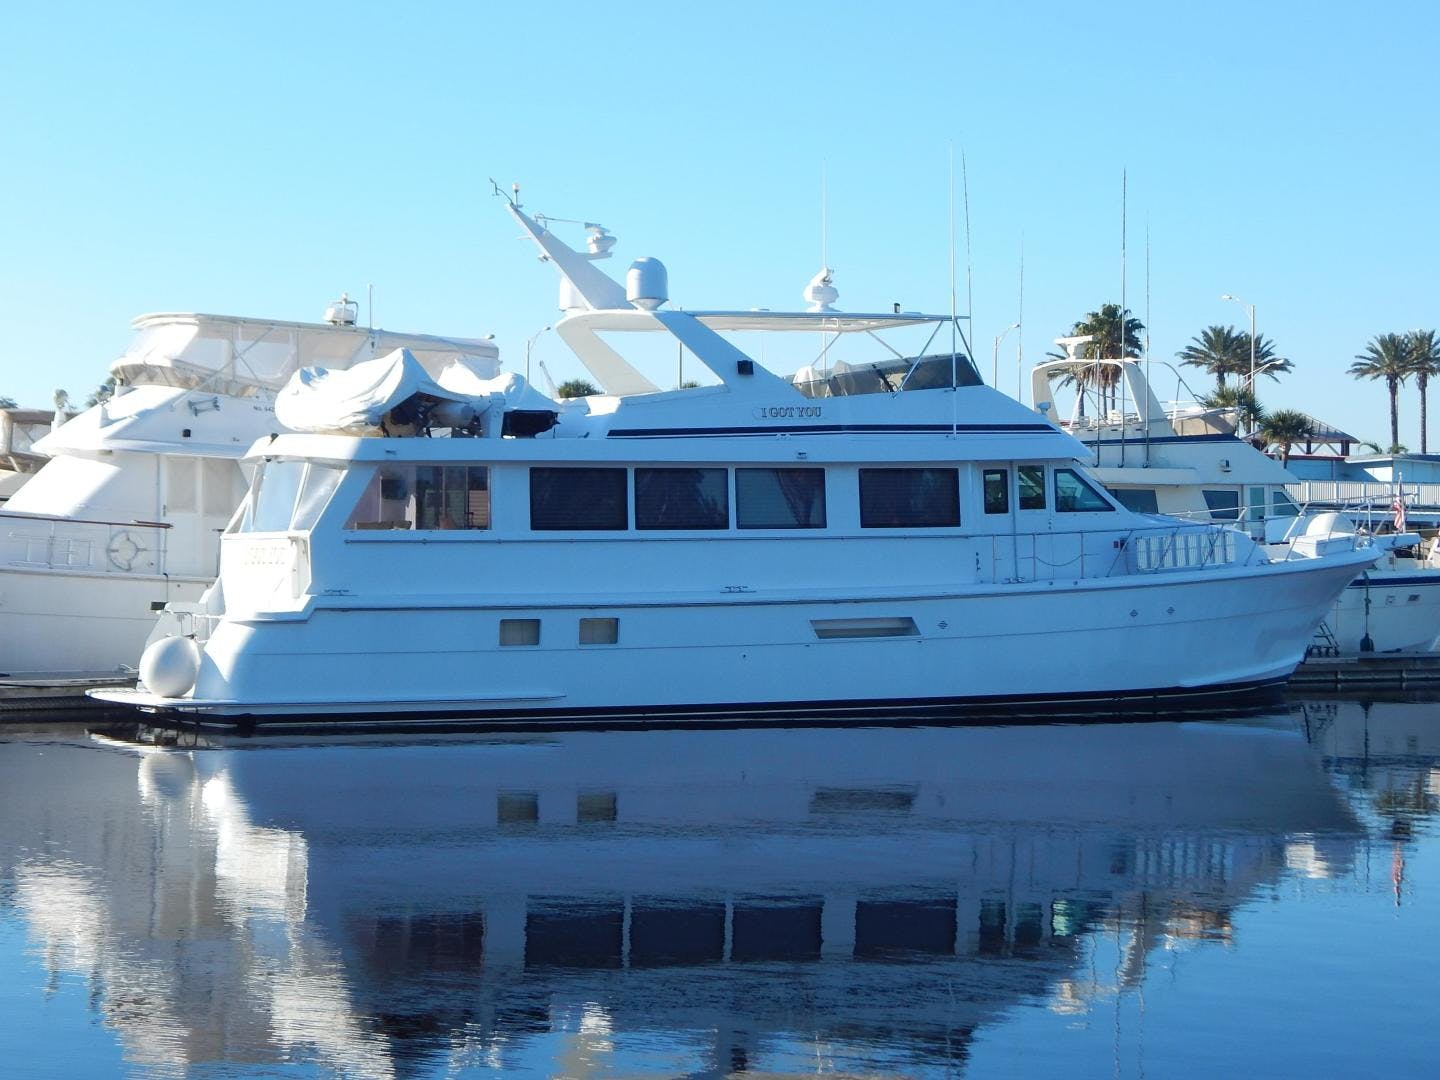 1998 Hatteras 74' Sport Deck Motor Yacht I GOT YOU | Picture 1 of 40